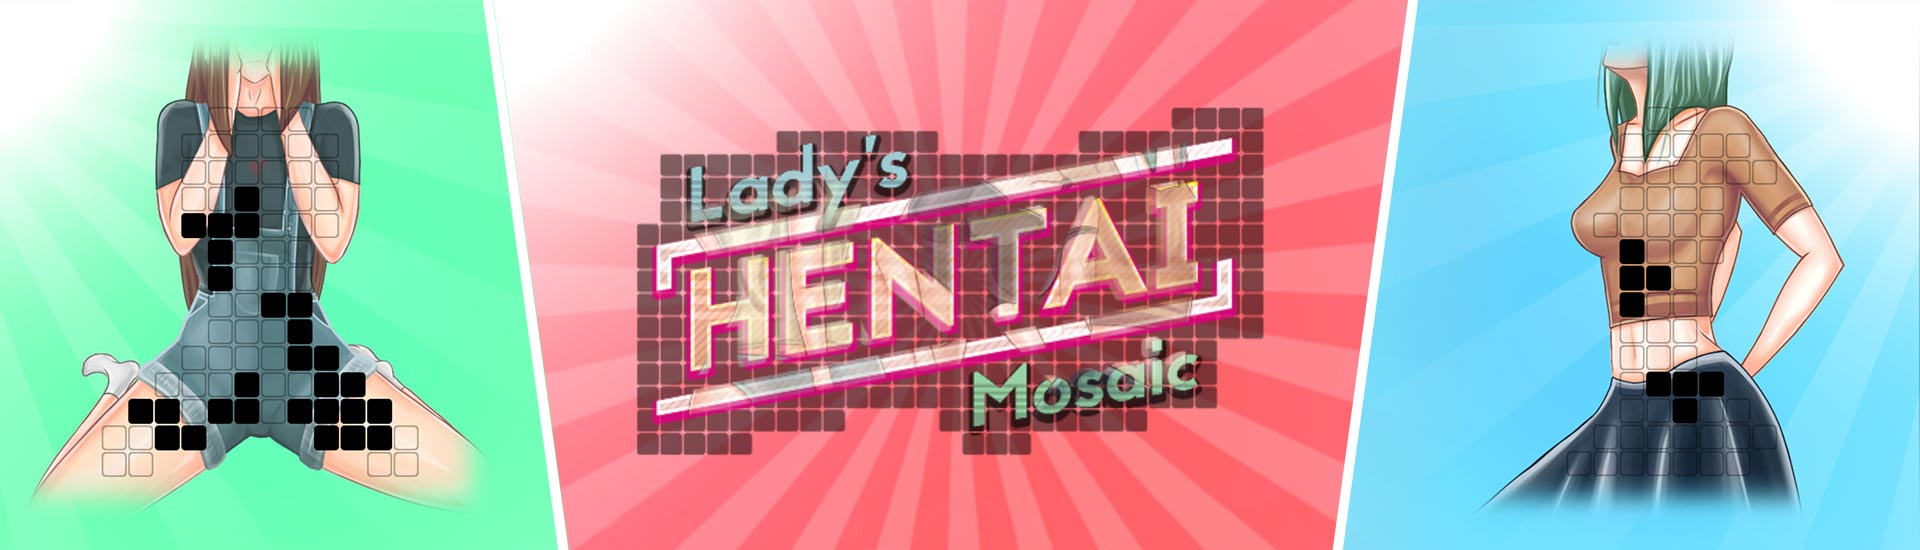 Lady's Hentai Mosaic cover